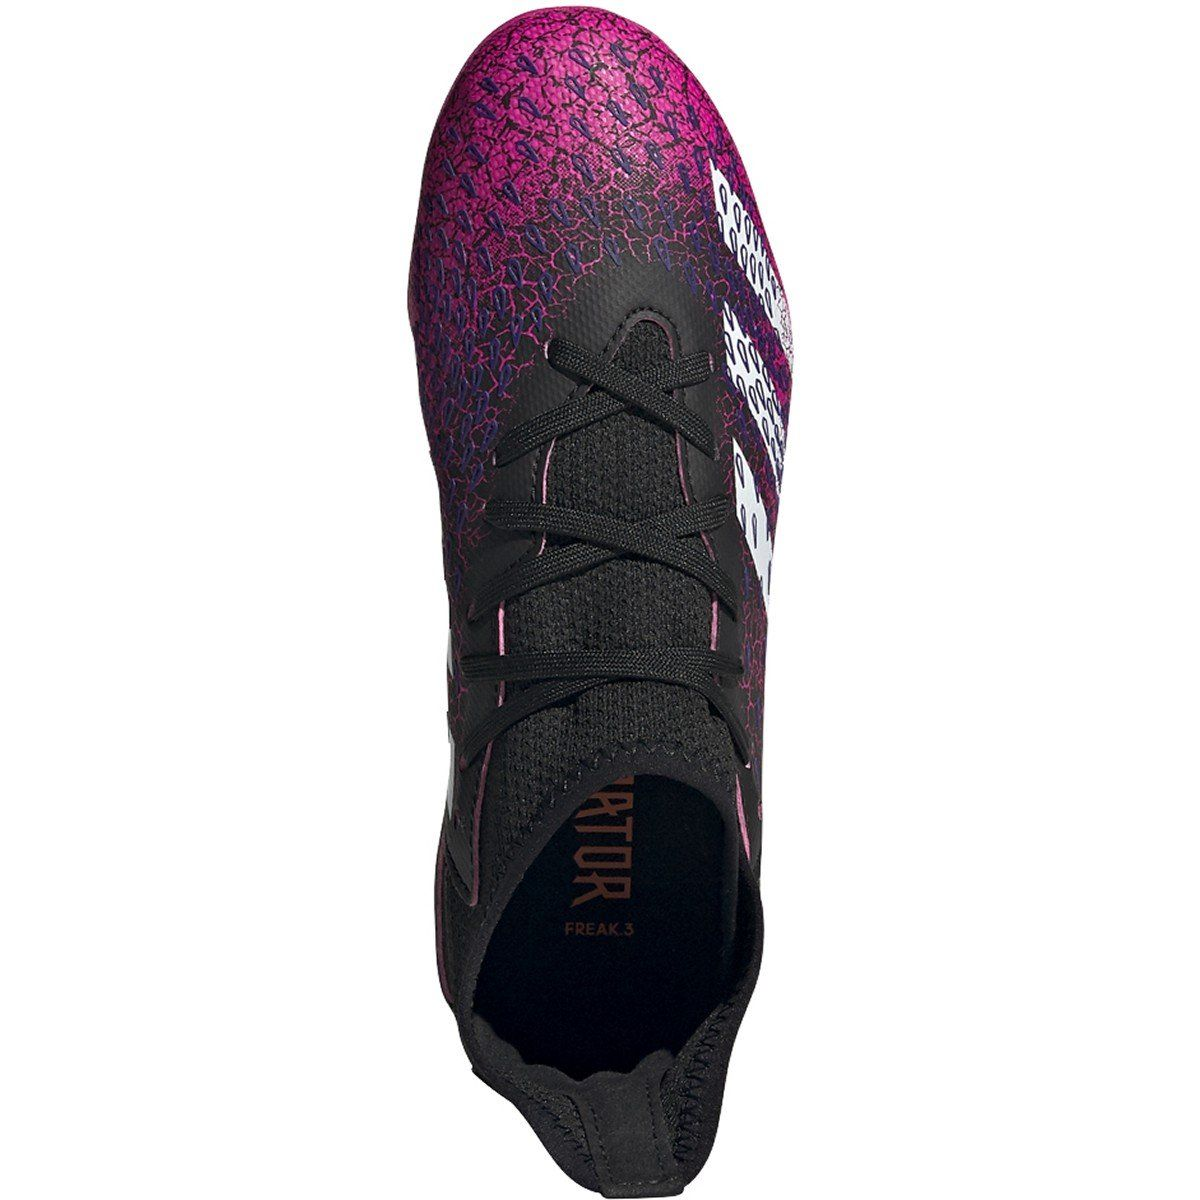 adidas Unisex-Child Predator Freak .3 Firm Ground Soccer Cleats | FW7530 Soccer Shoes Adidas 1 Black/White/Shock Pink